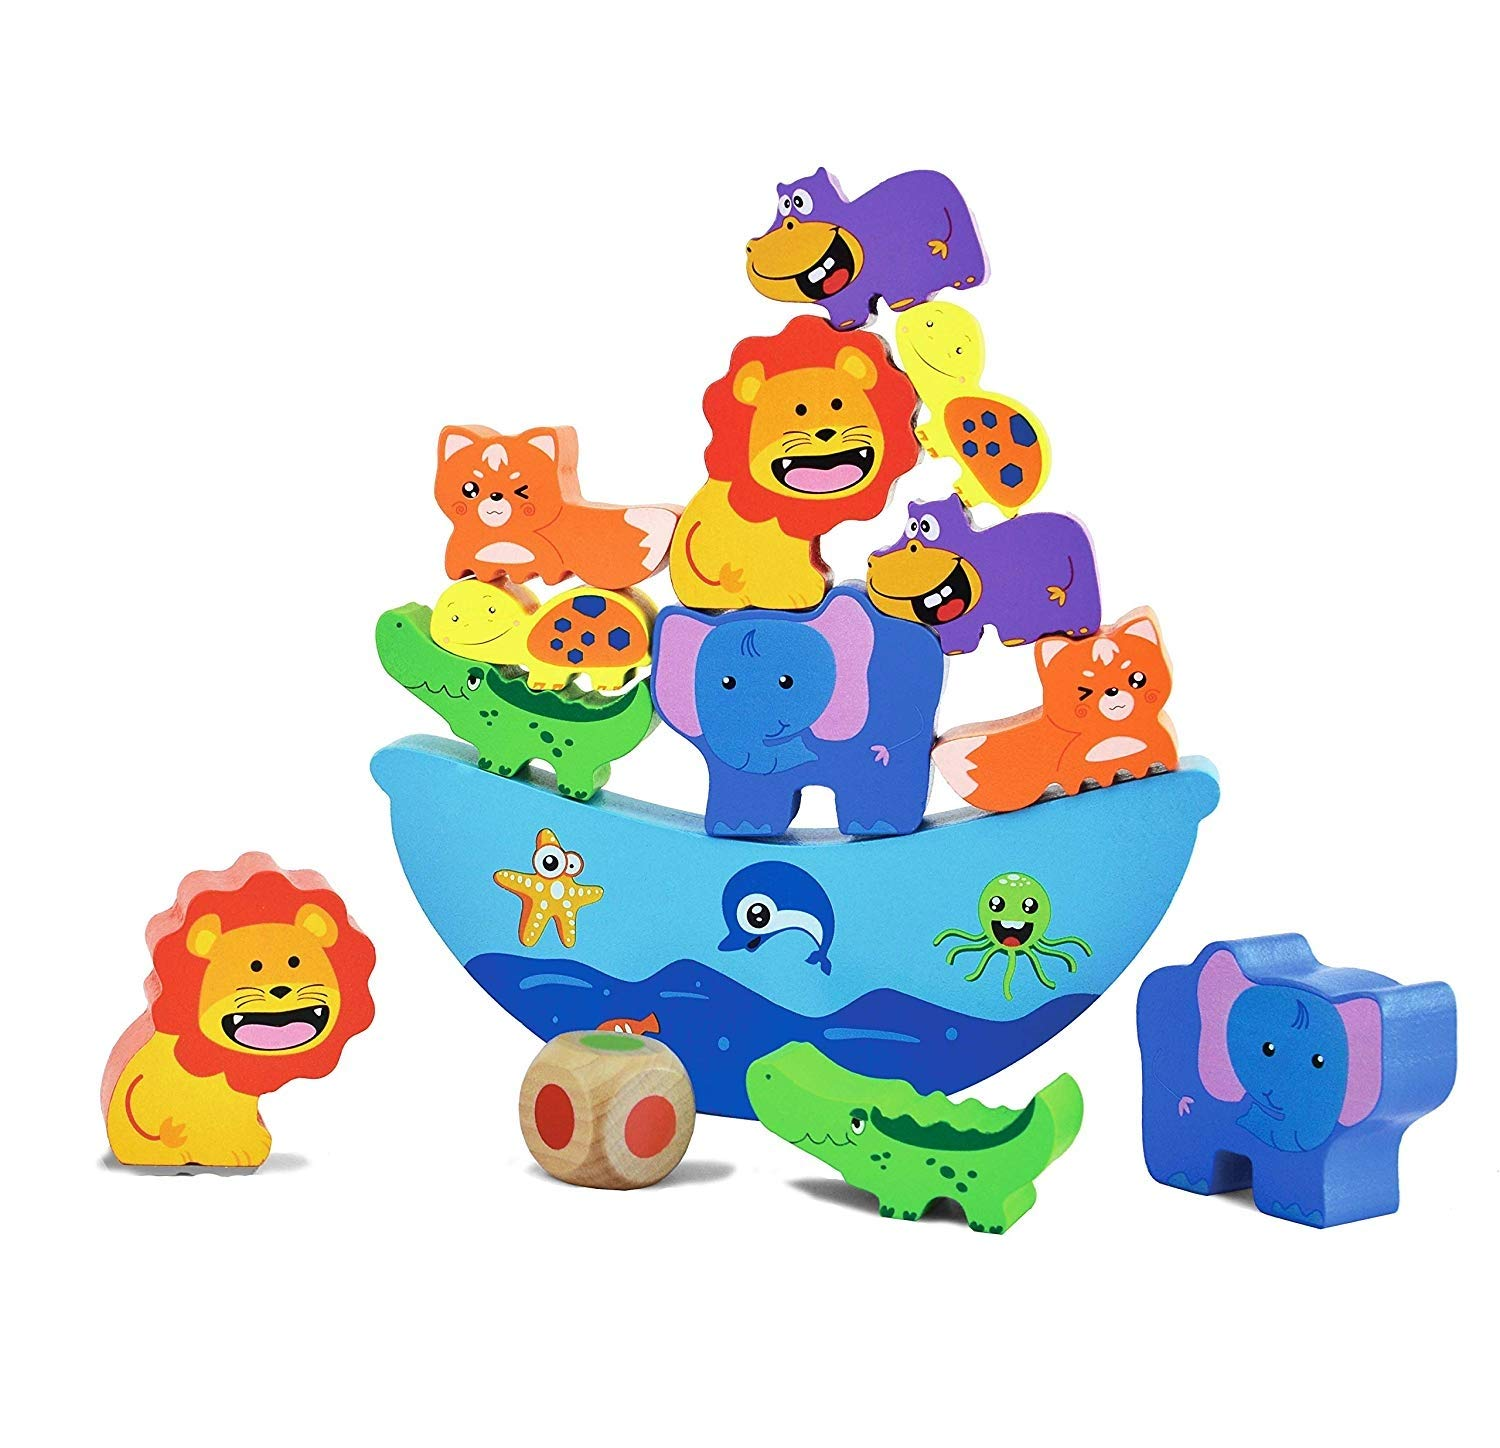 Ampersand clipart with kids png download Amazon.com: AMPERSAND SHOPS Kids Wooden Animal Stacking Building ... png download